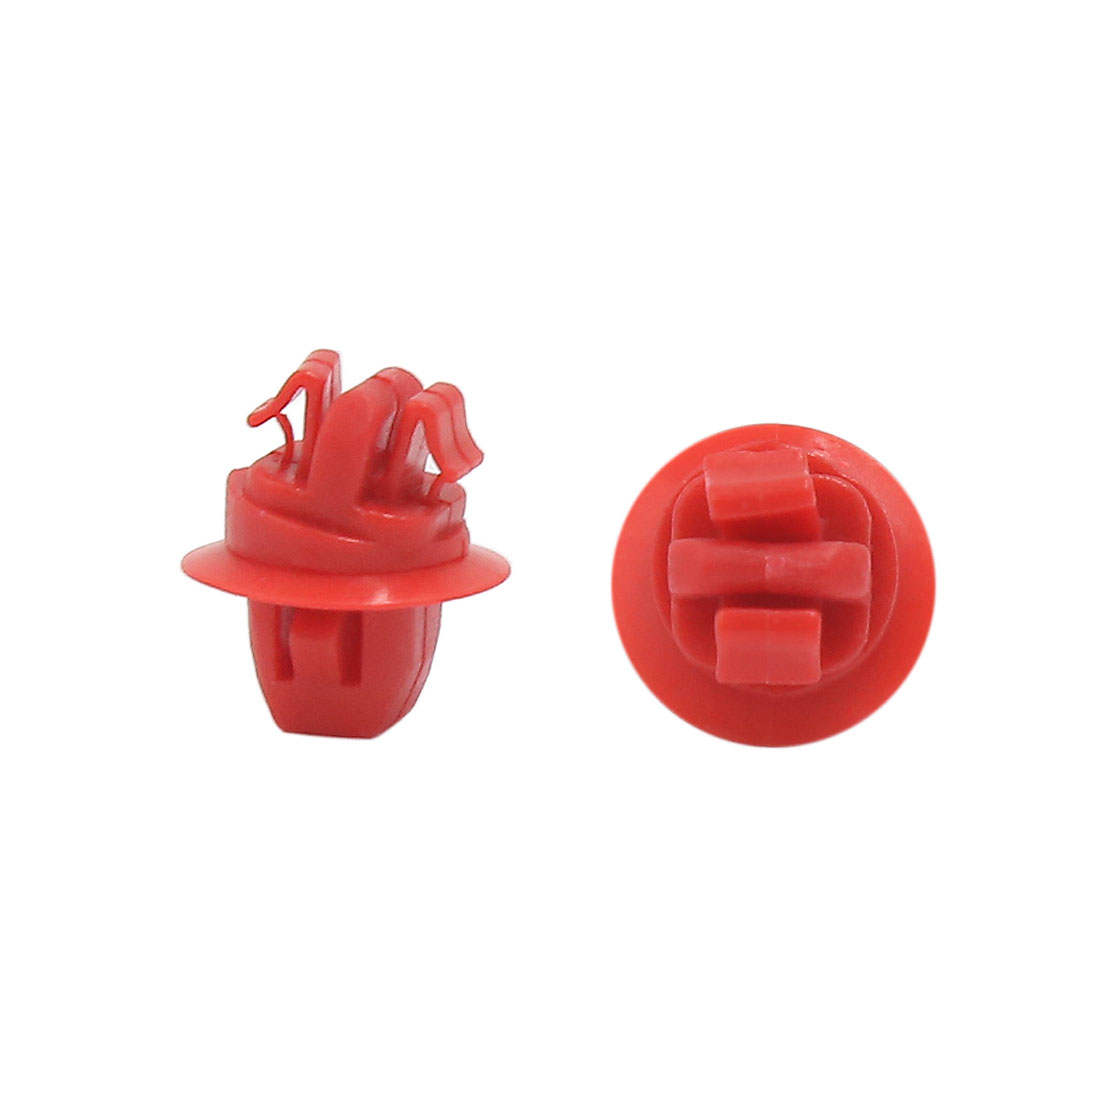 20PCS Red Plastic Rivets Car Bumper Fender Fastener Clips for 10mm x 8mm Hole